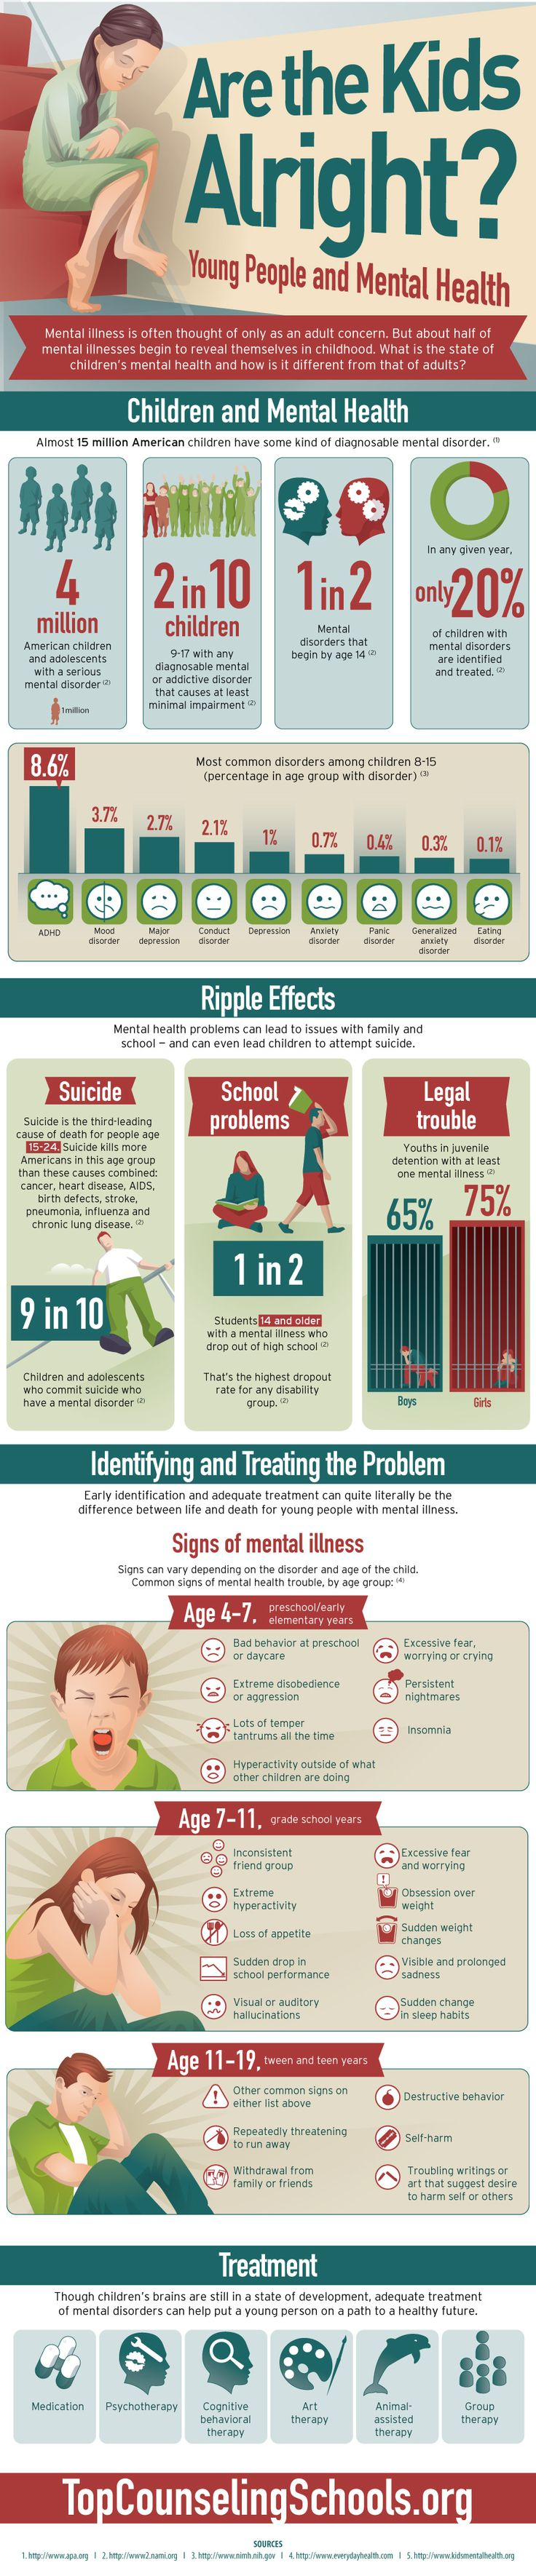 Mental illness is often thought of only as an adult concern. But about half of mental illnesses begin to reveal themselves in childhood. What is the state of children's mental health and how is it different from that of adults?